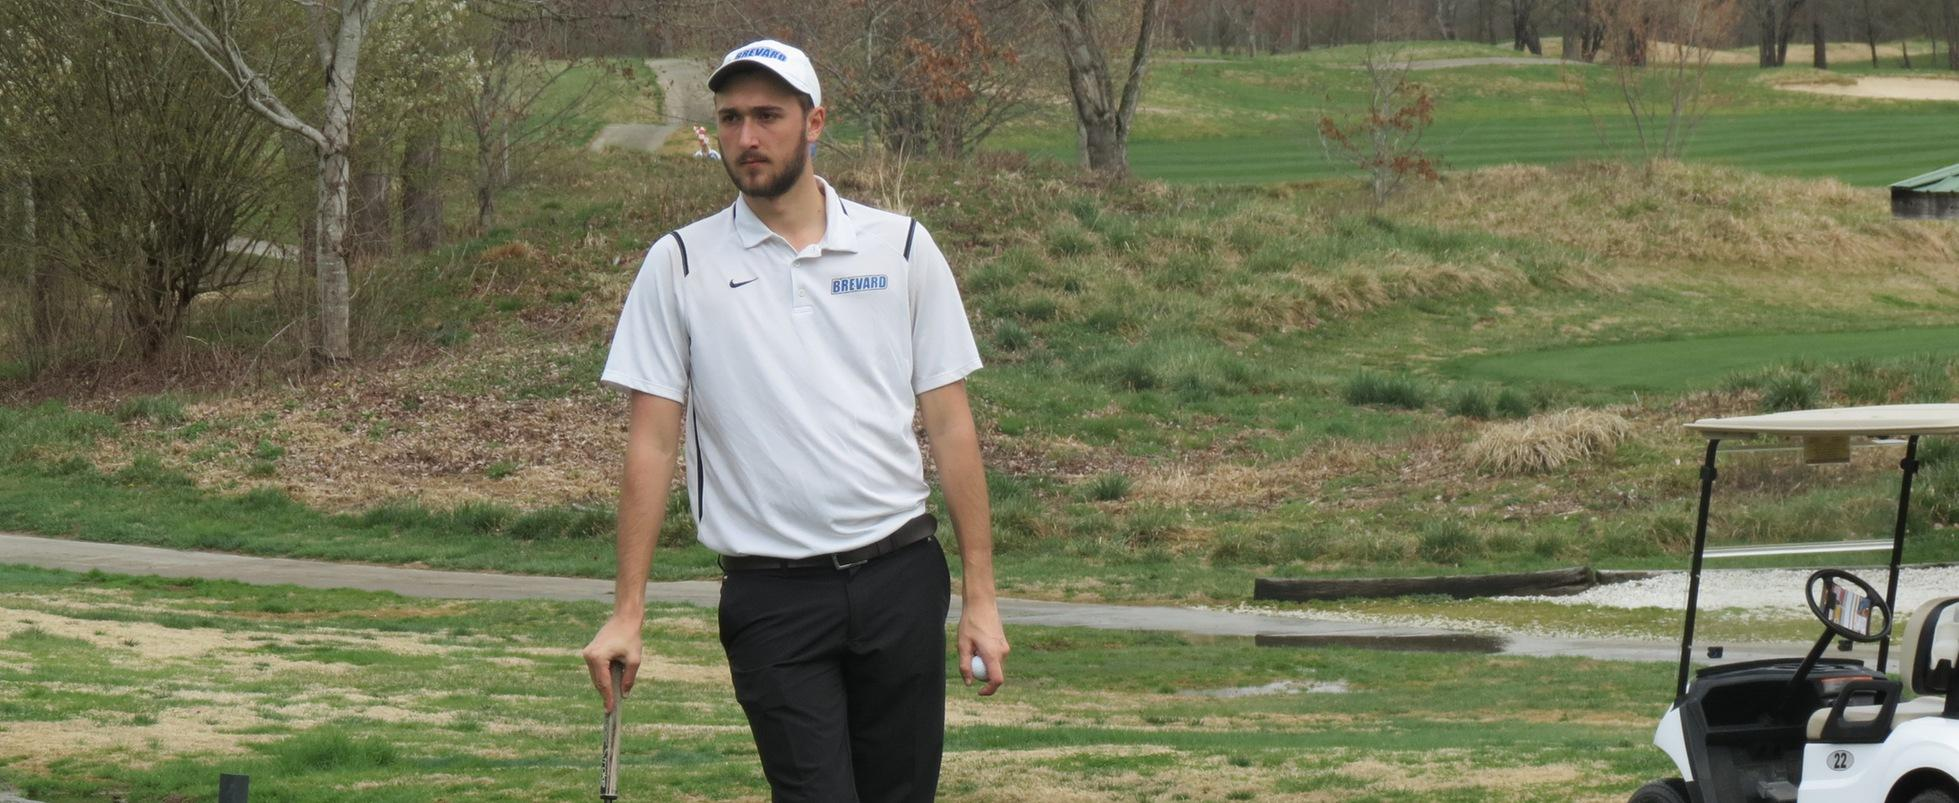 Brevard Men's Golf Tees Off Sunday